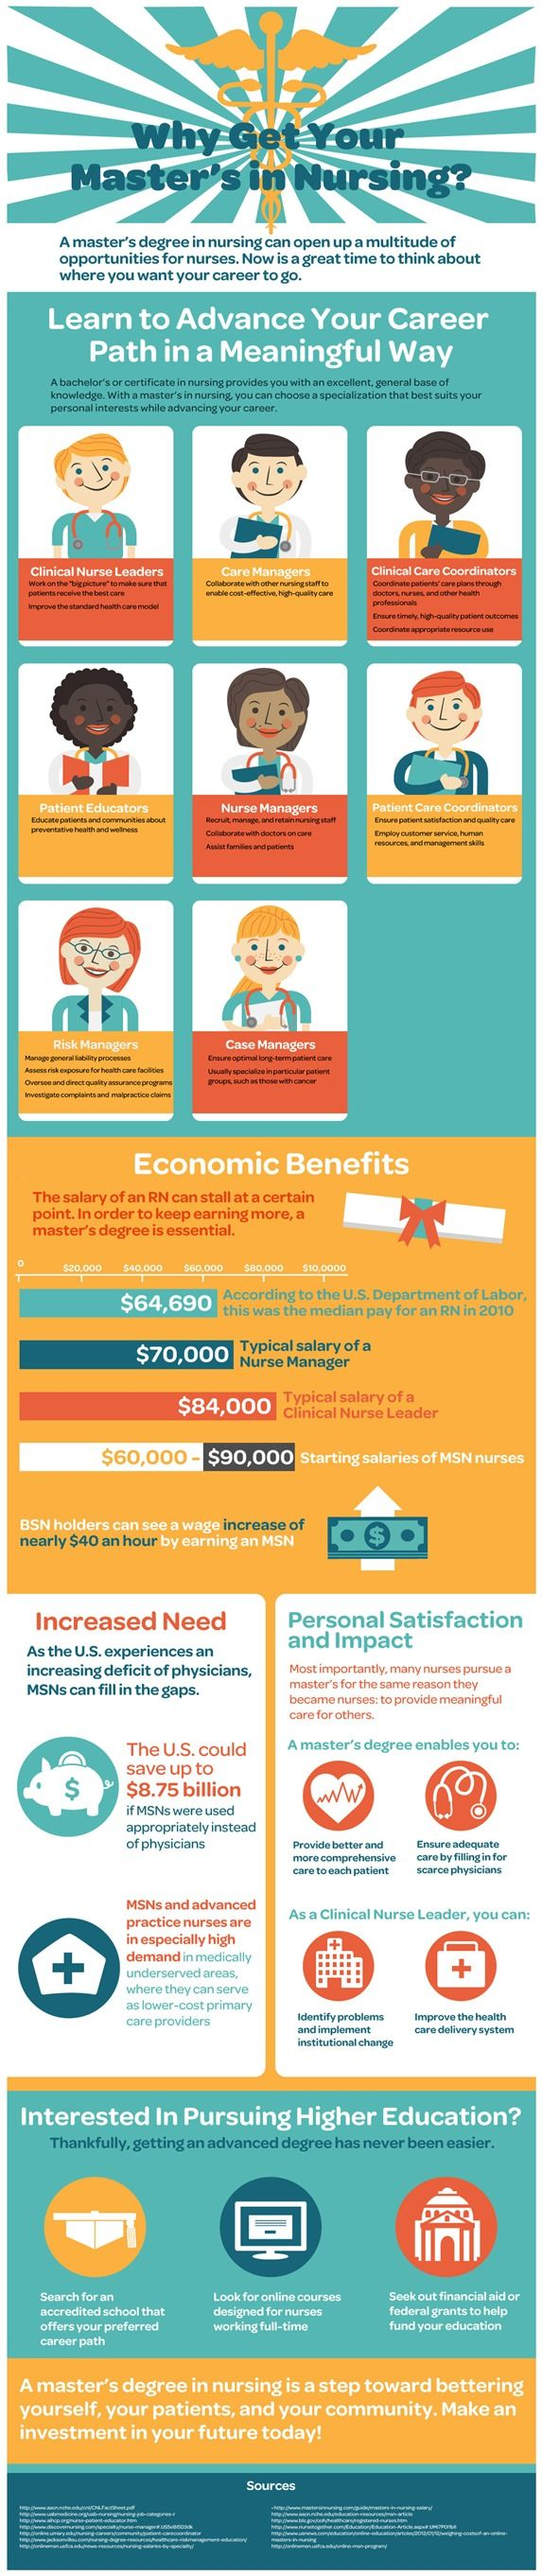 Why Get Your Master's In #Nursing? [#Infographic]